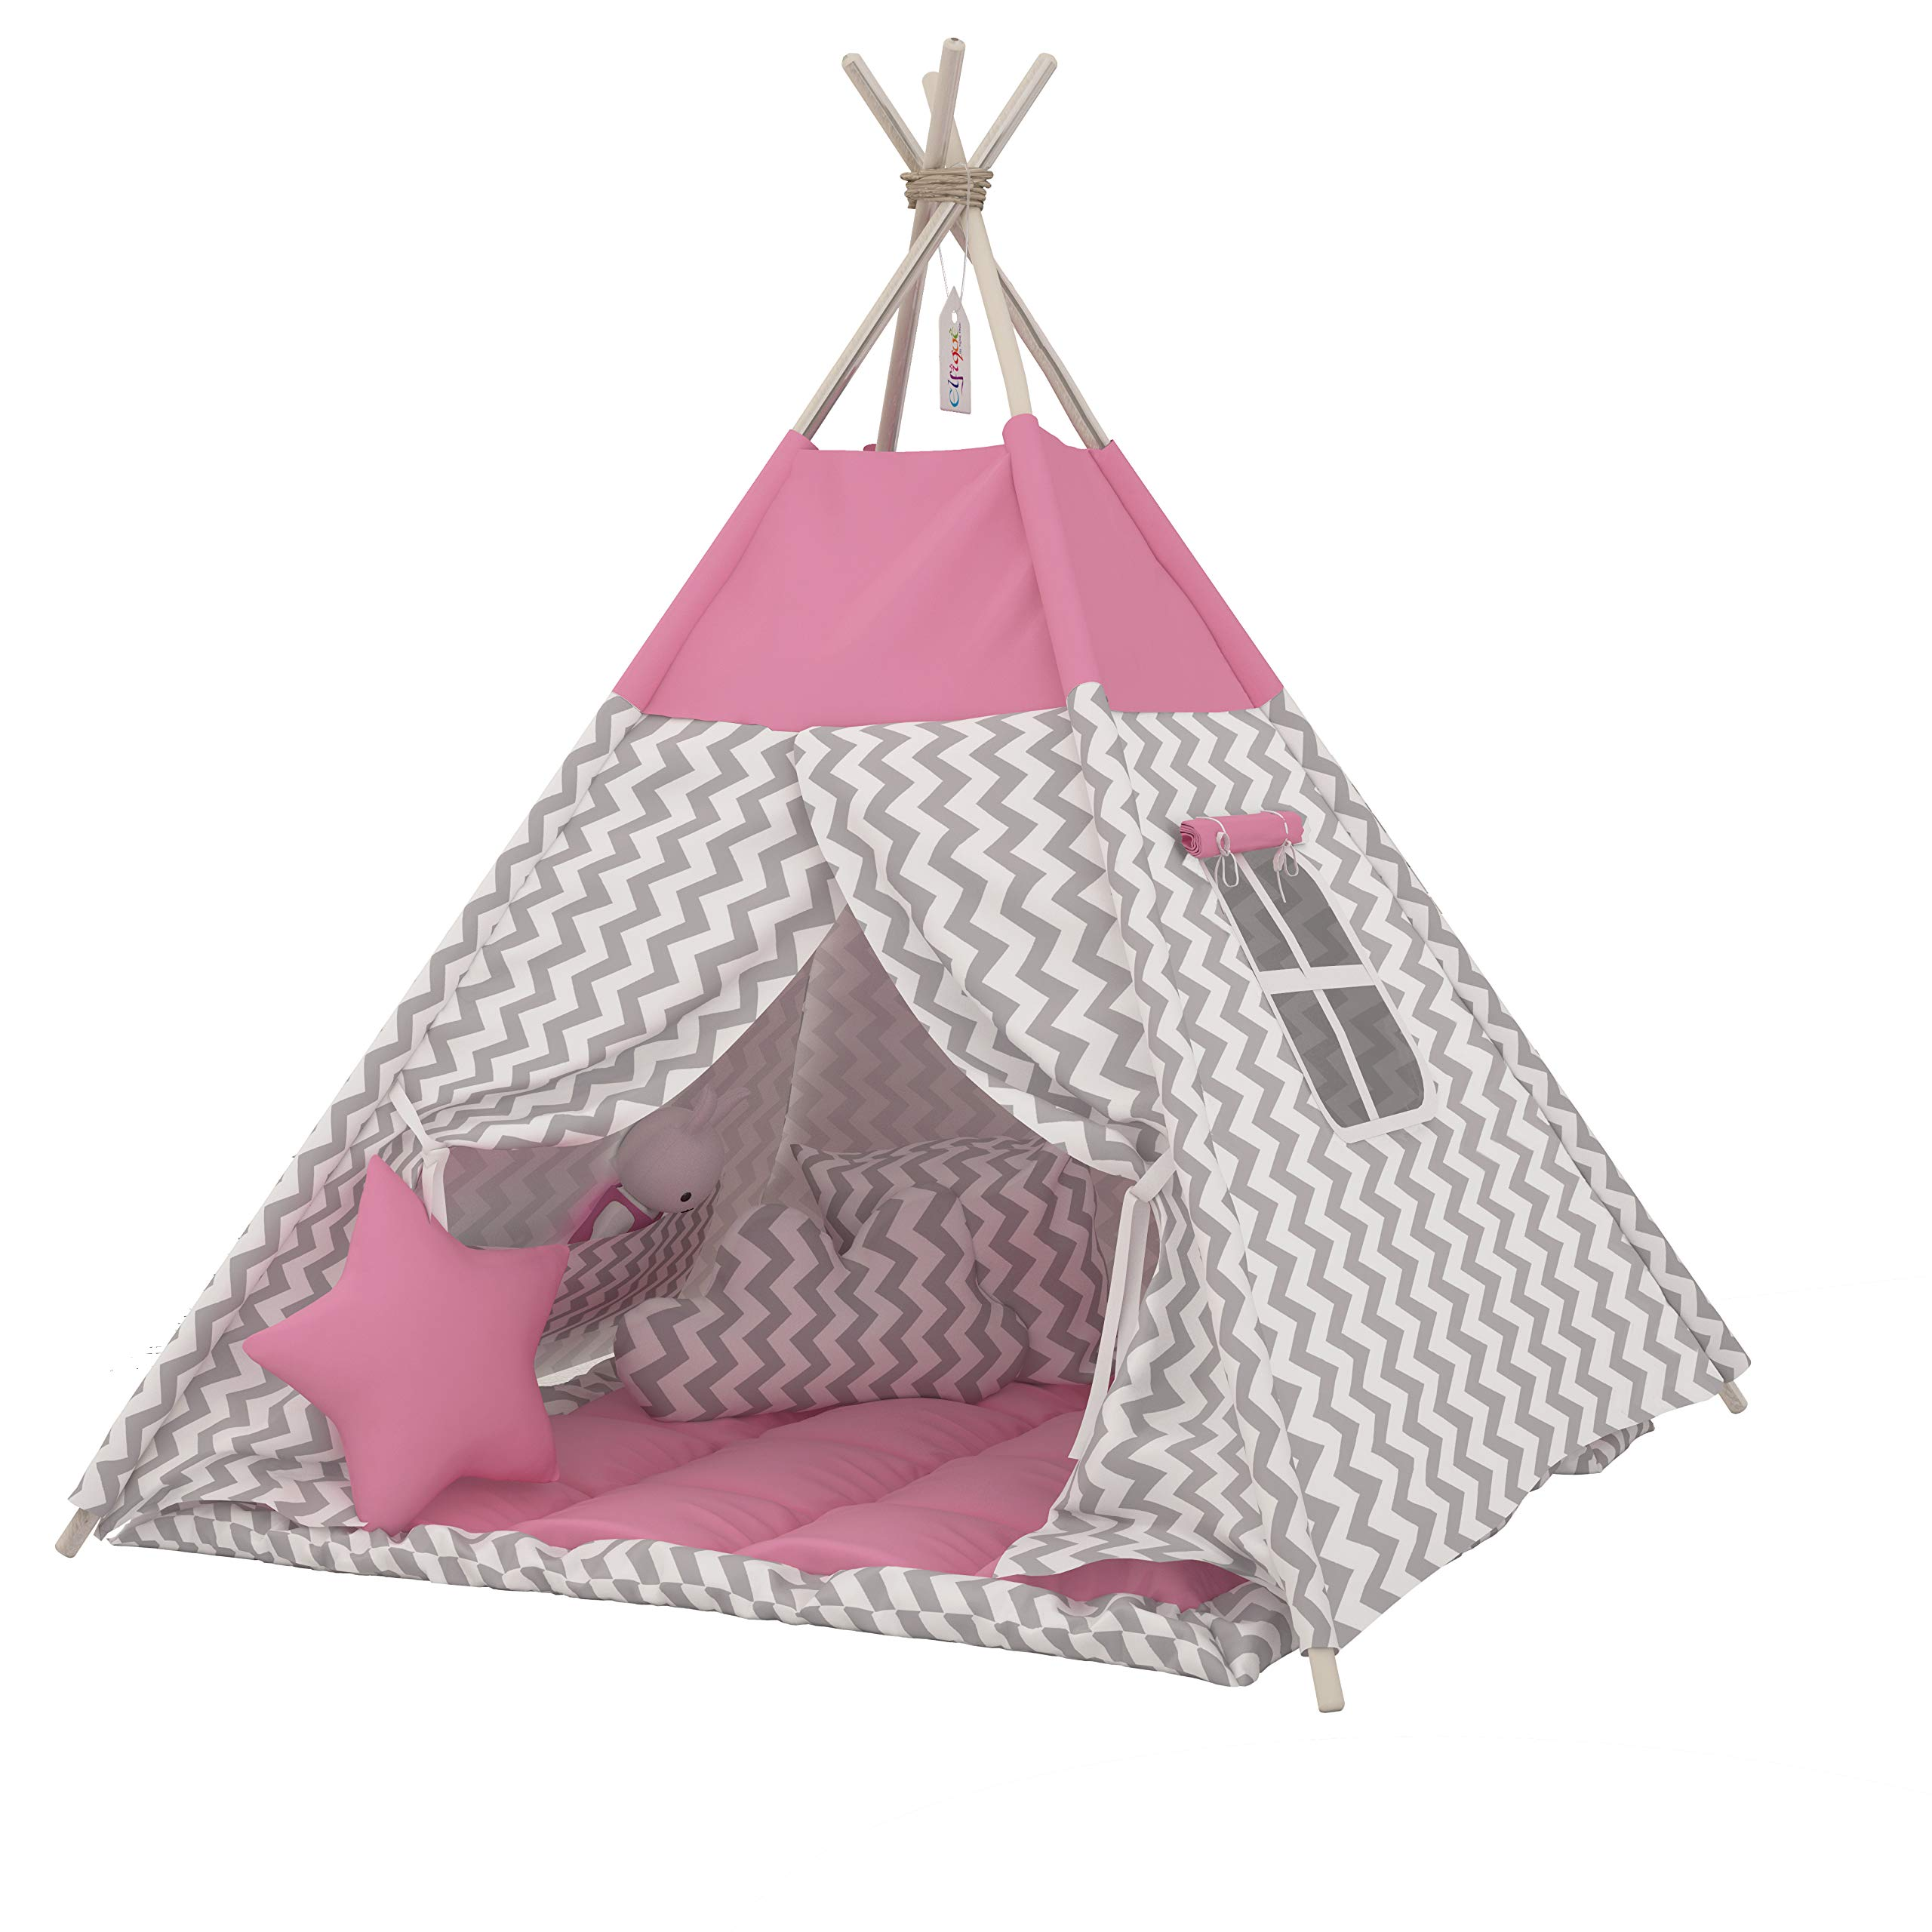 Kids Nook Tents for Indoor /& Outdoor Use Can be used for ten years old MYMM Children tent Princess Castle Play Tent Carrying Case Light blue baby birthday gift